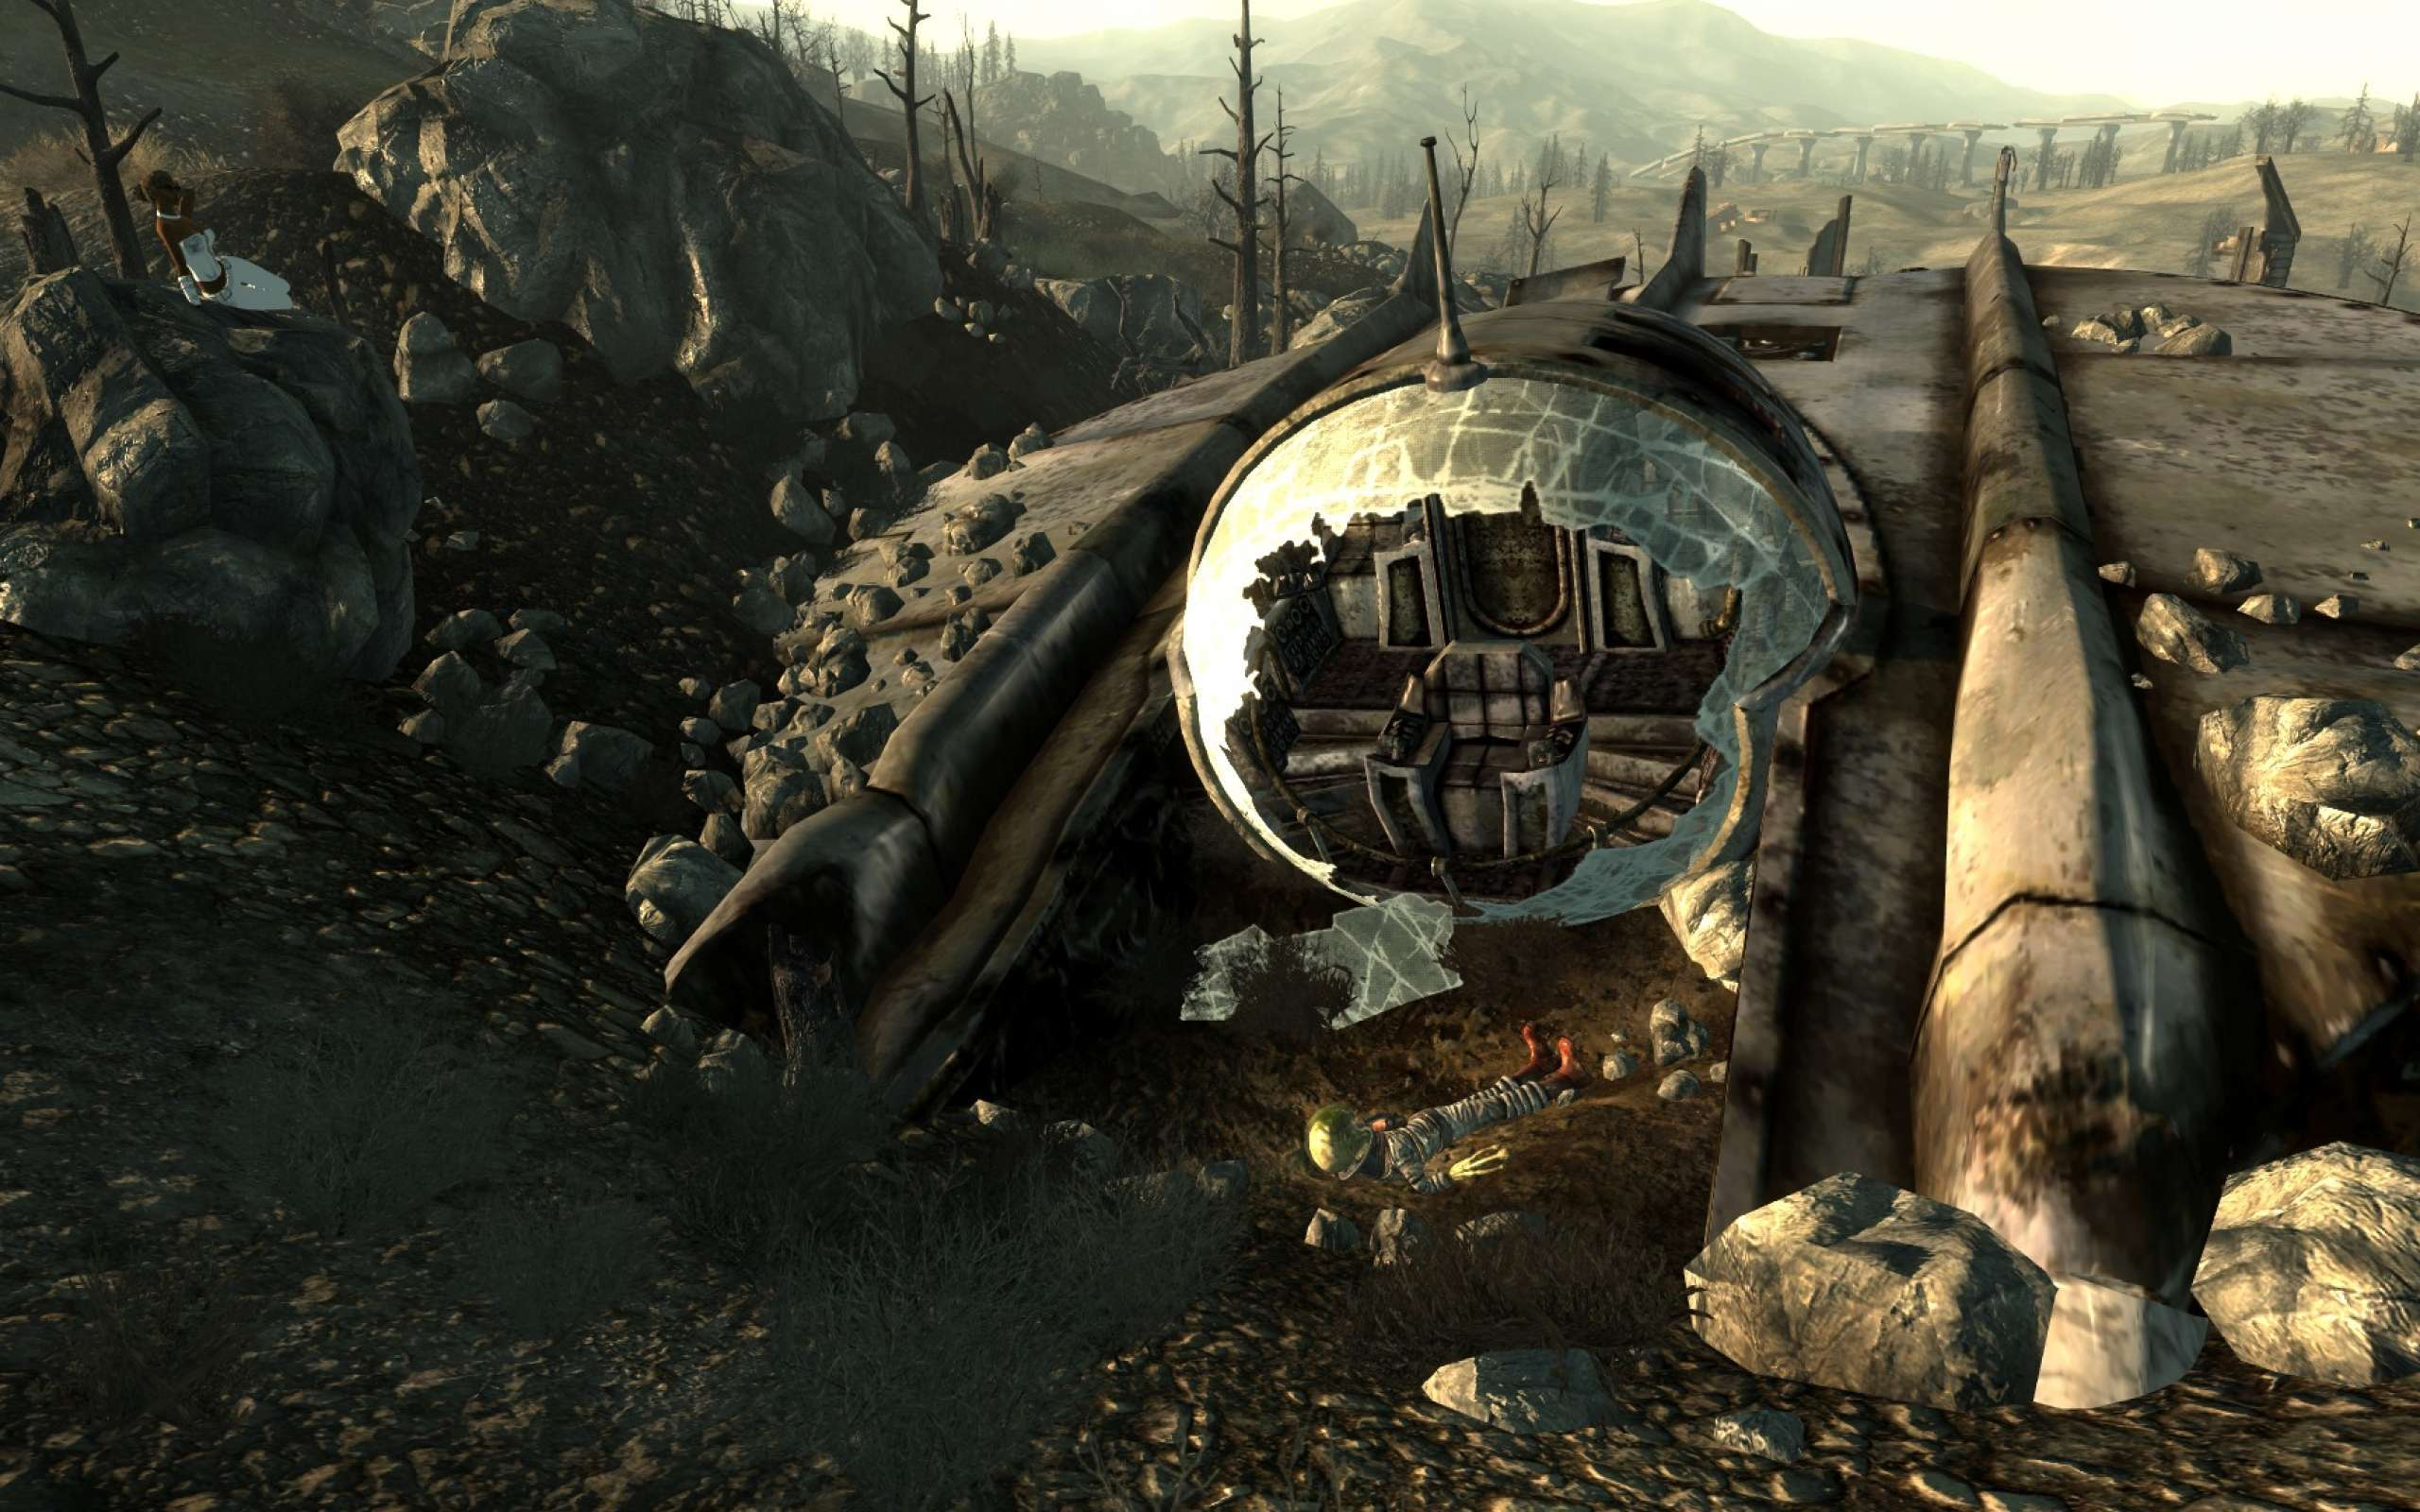 Fallout 3 Wallpapers Full HD - Wallpaper Cave